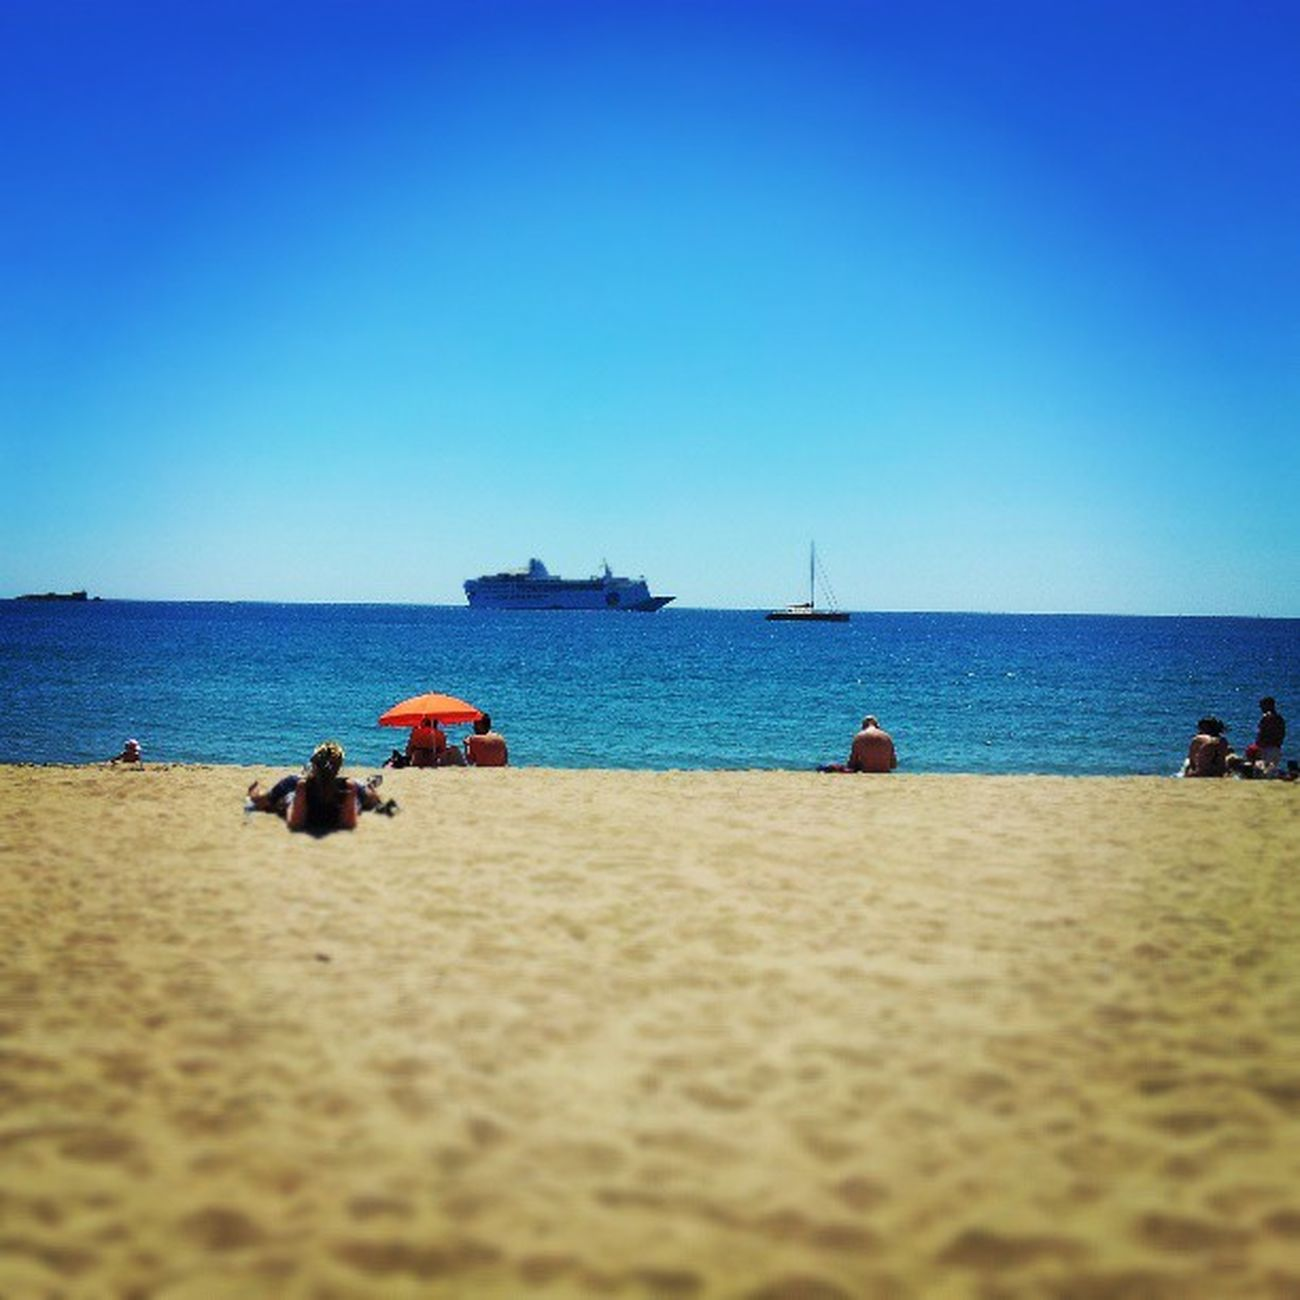 Demain retour dans la grisaille parisienne... :-( Endofholidays Theend Holidays Beach plage playa sun sunset skyporn bluesky cielbleu lovelovelove love lovephotography photography photodujour photoofday bestoftheday tagsforlikes likes sud south france french avec @stee92 <3